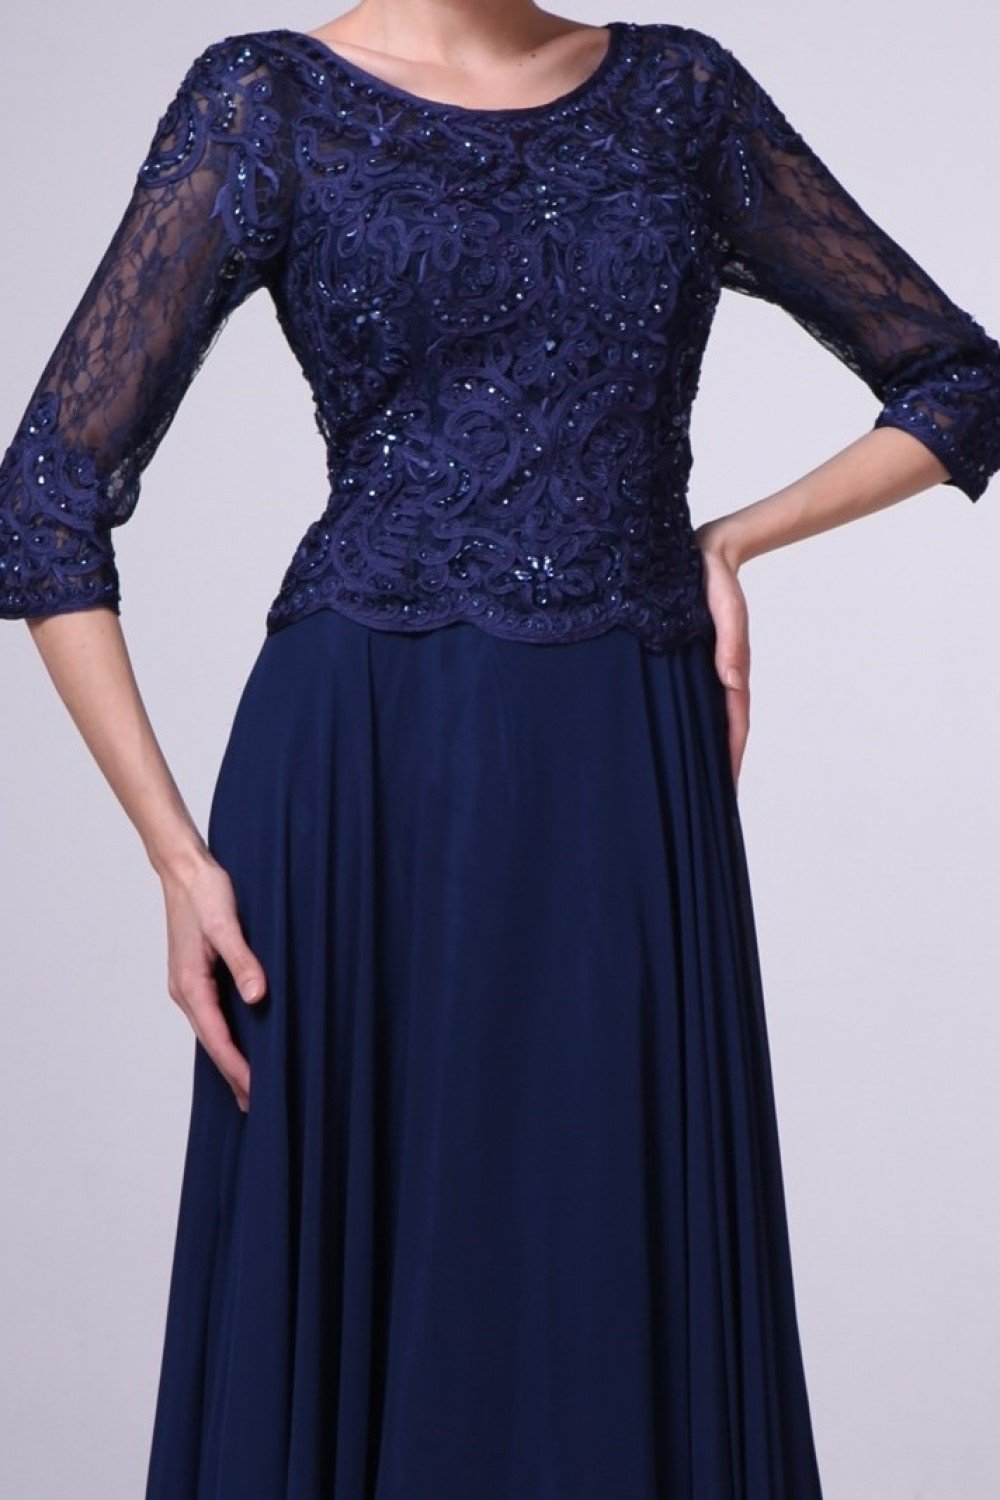 Cinderella Divine - 14327SC Lace Scoop A-Line Evening Dress